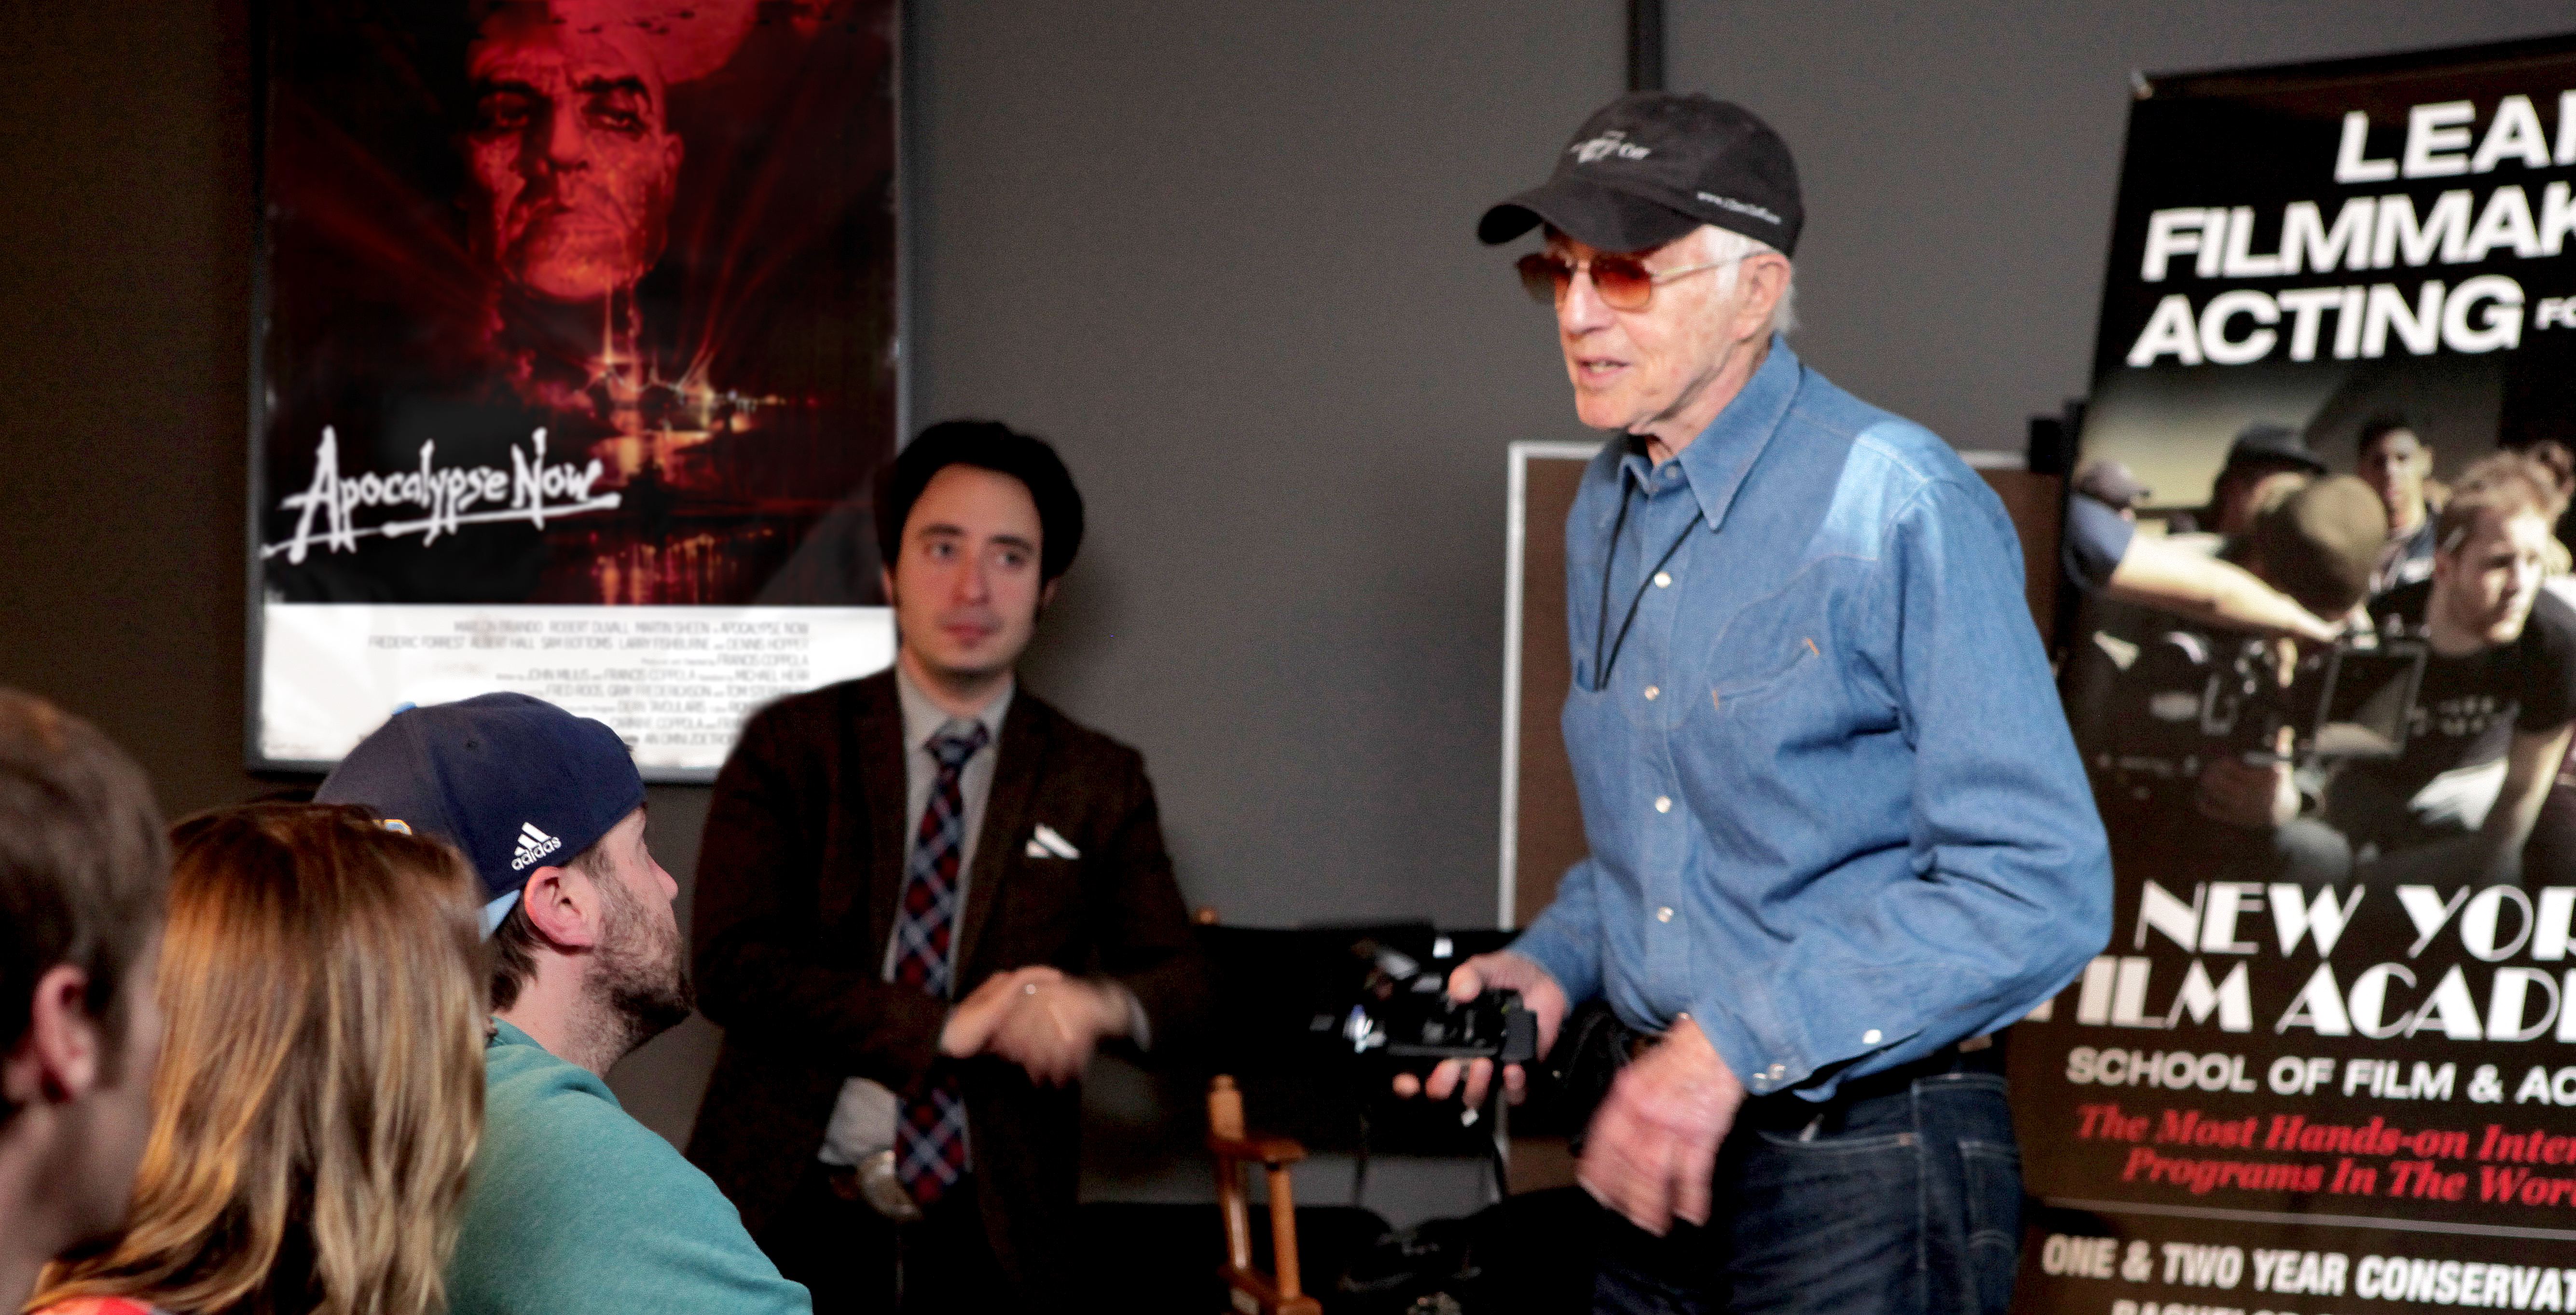 Oscar-winning cinematographer Haskell Wexler speaks to students